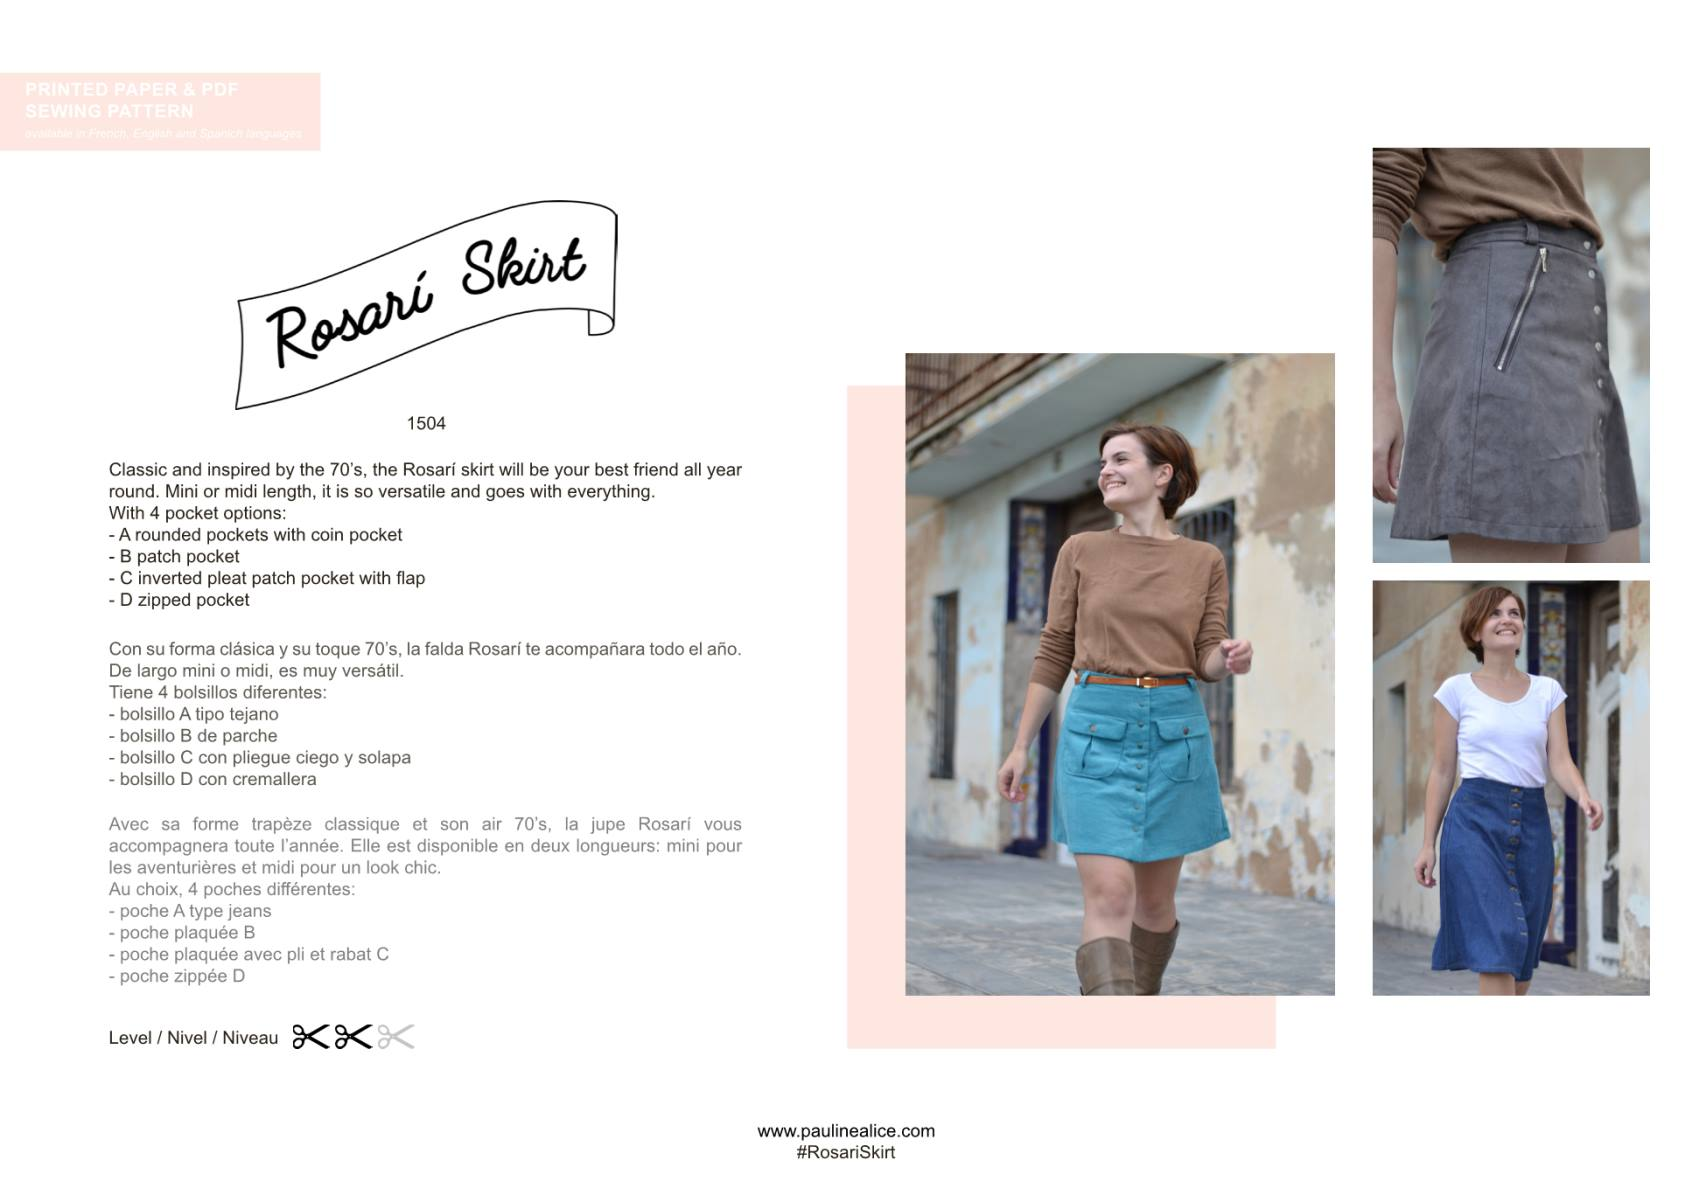 717f04f46 Index of /catalogo/sewing-patterns/archivos/assets/mobile/pages